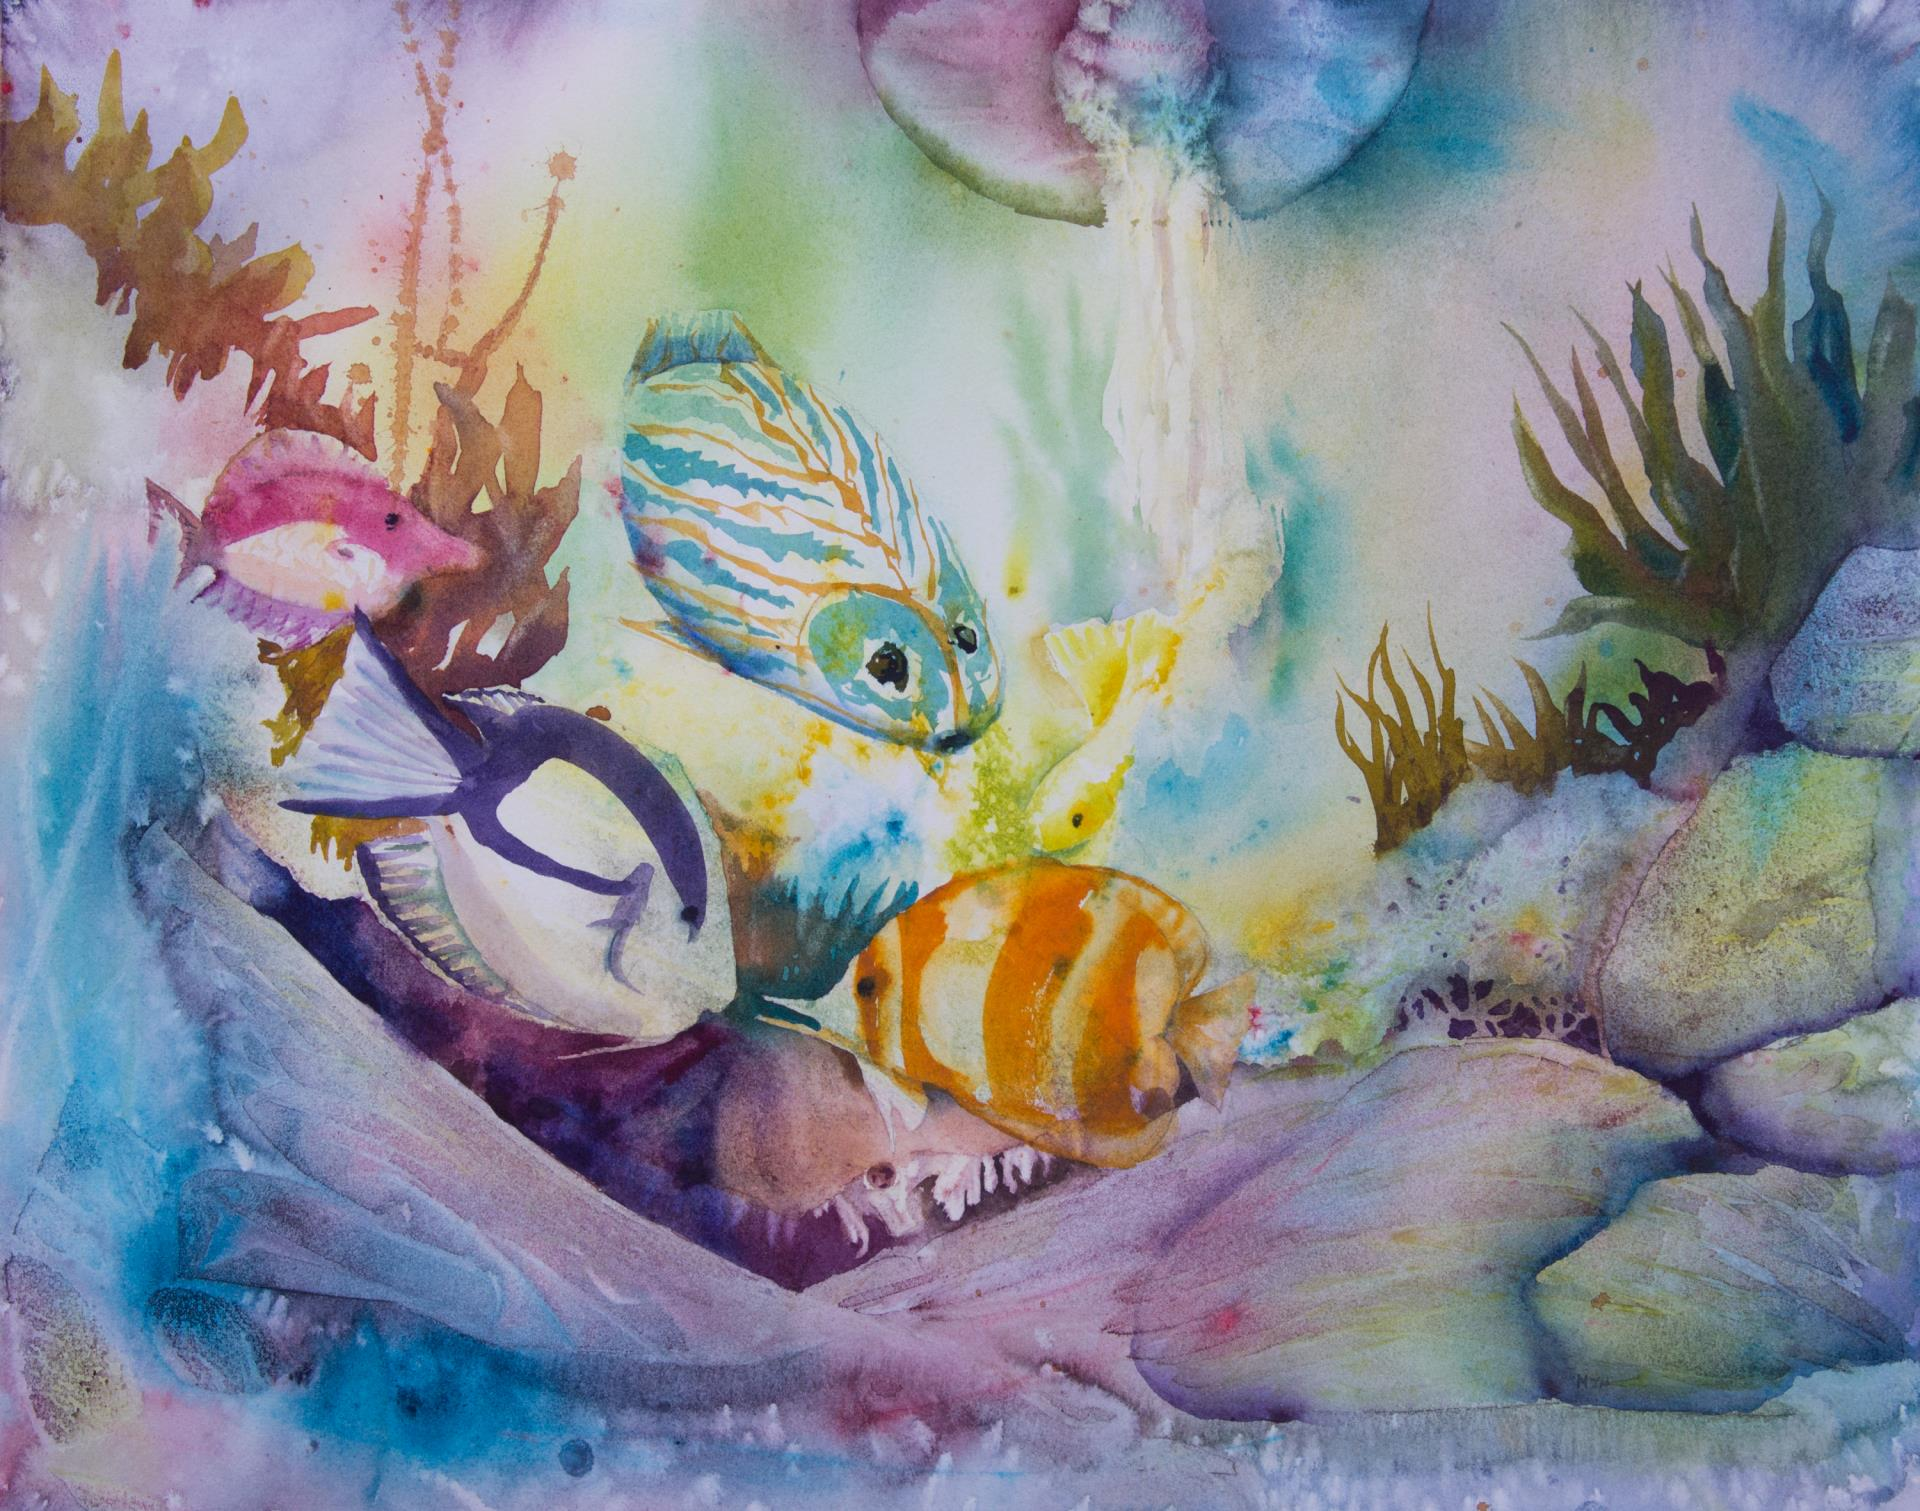 16b Melanie Harman - Under the Deep - watercolor